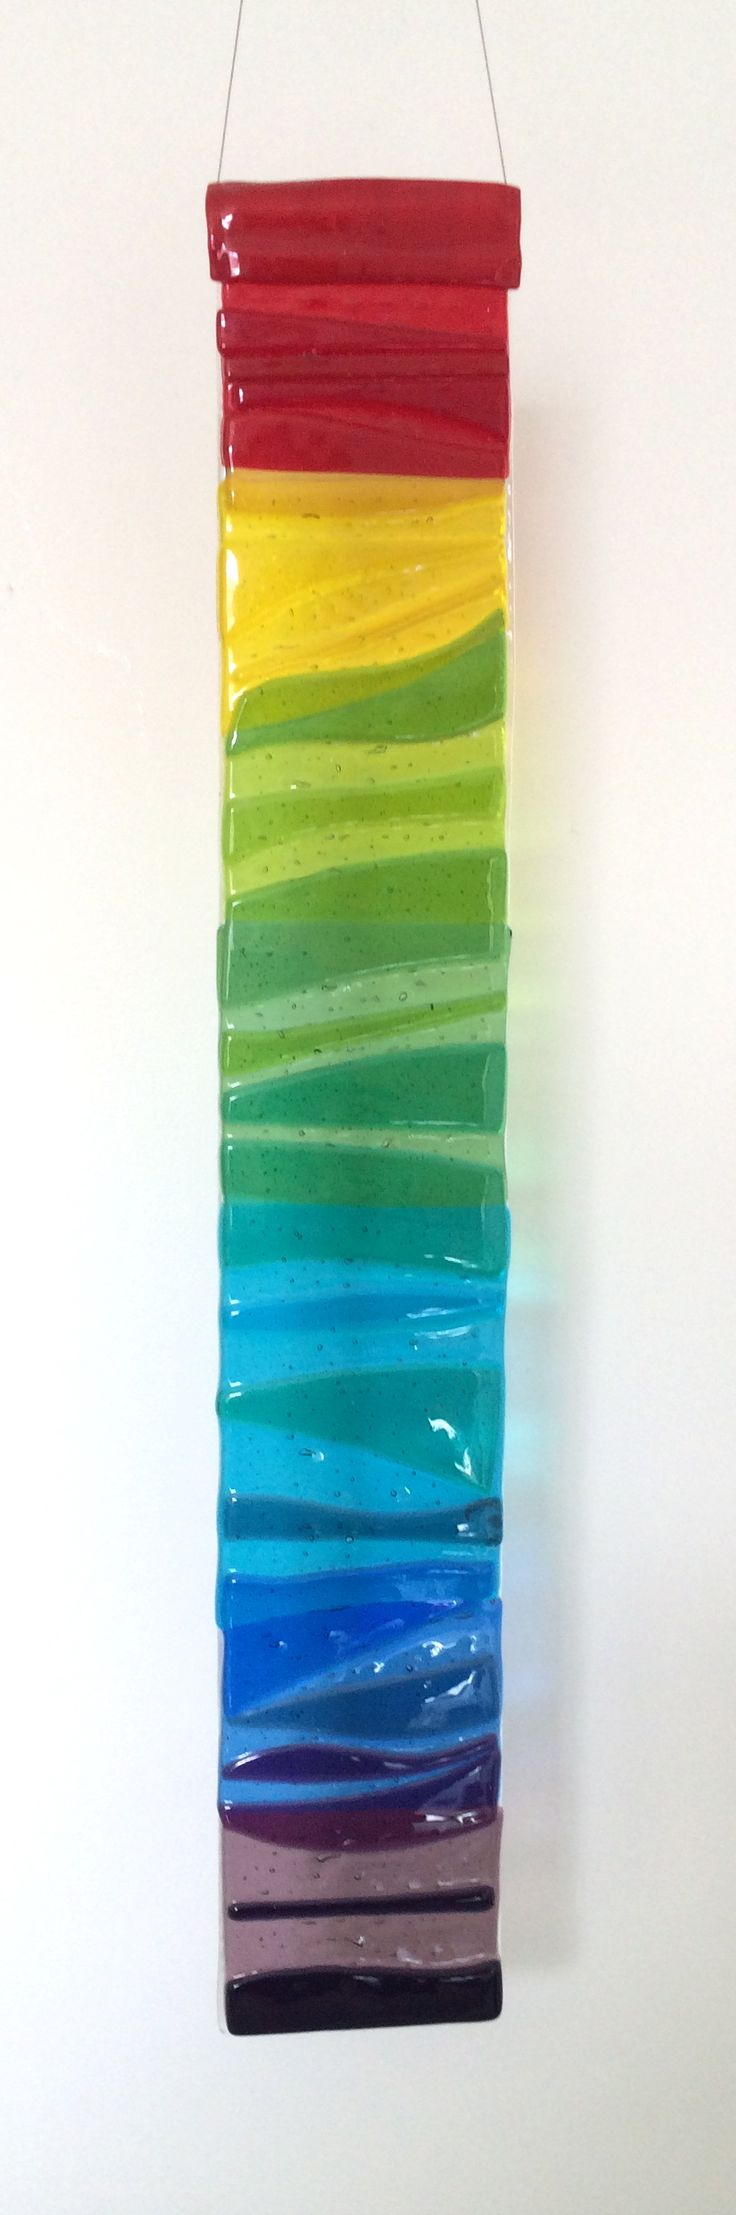 Row of beach huts curved fused glass table clock - Fused Glass Suncatcher With Hanging Wire Ready To Hang In The Window On The Wall Or In The Garden Design Rainbow Large X Or Small X Please Note That All